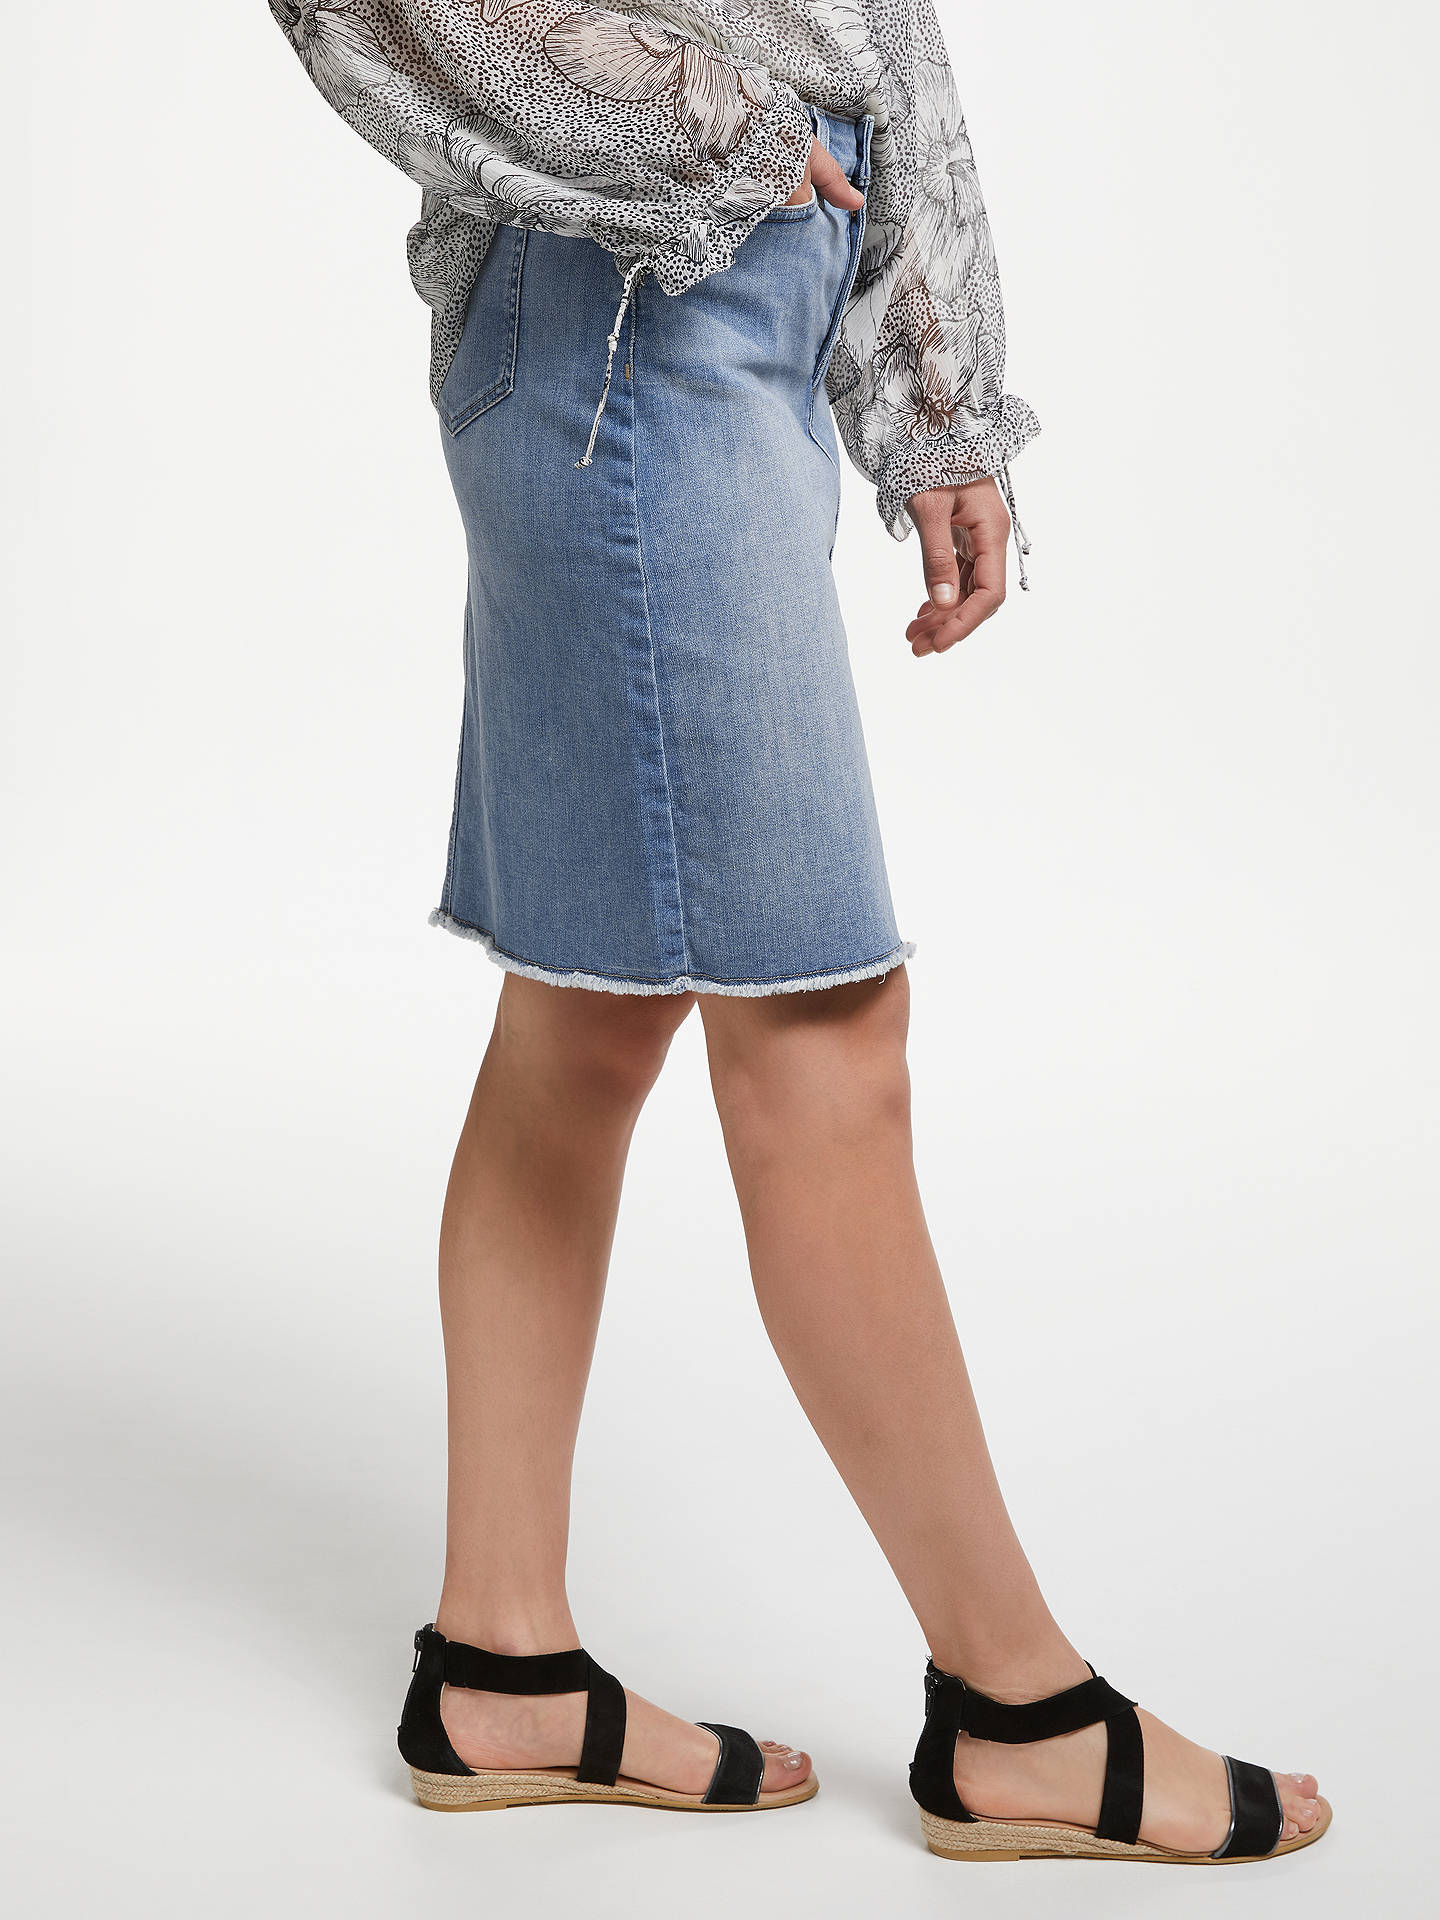 492432a88a ... Buy NYDJ Frayed Hem Denim Skirt, Dreamstate, 8 Online at johnlewis.com